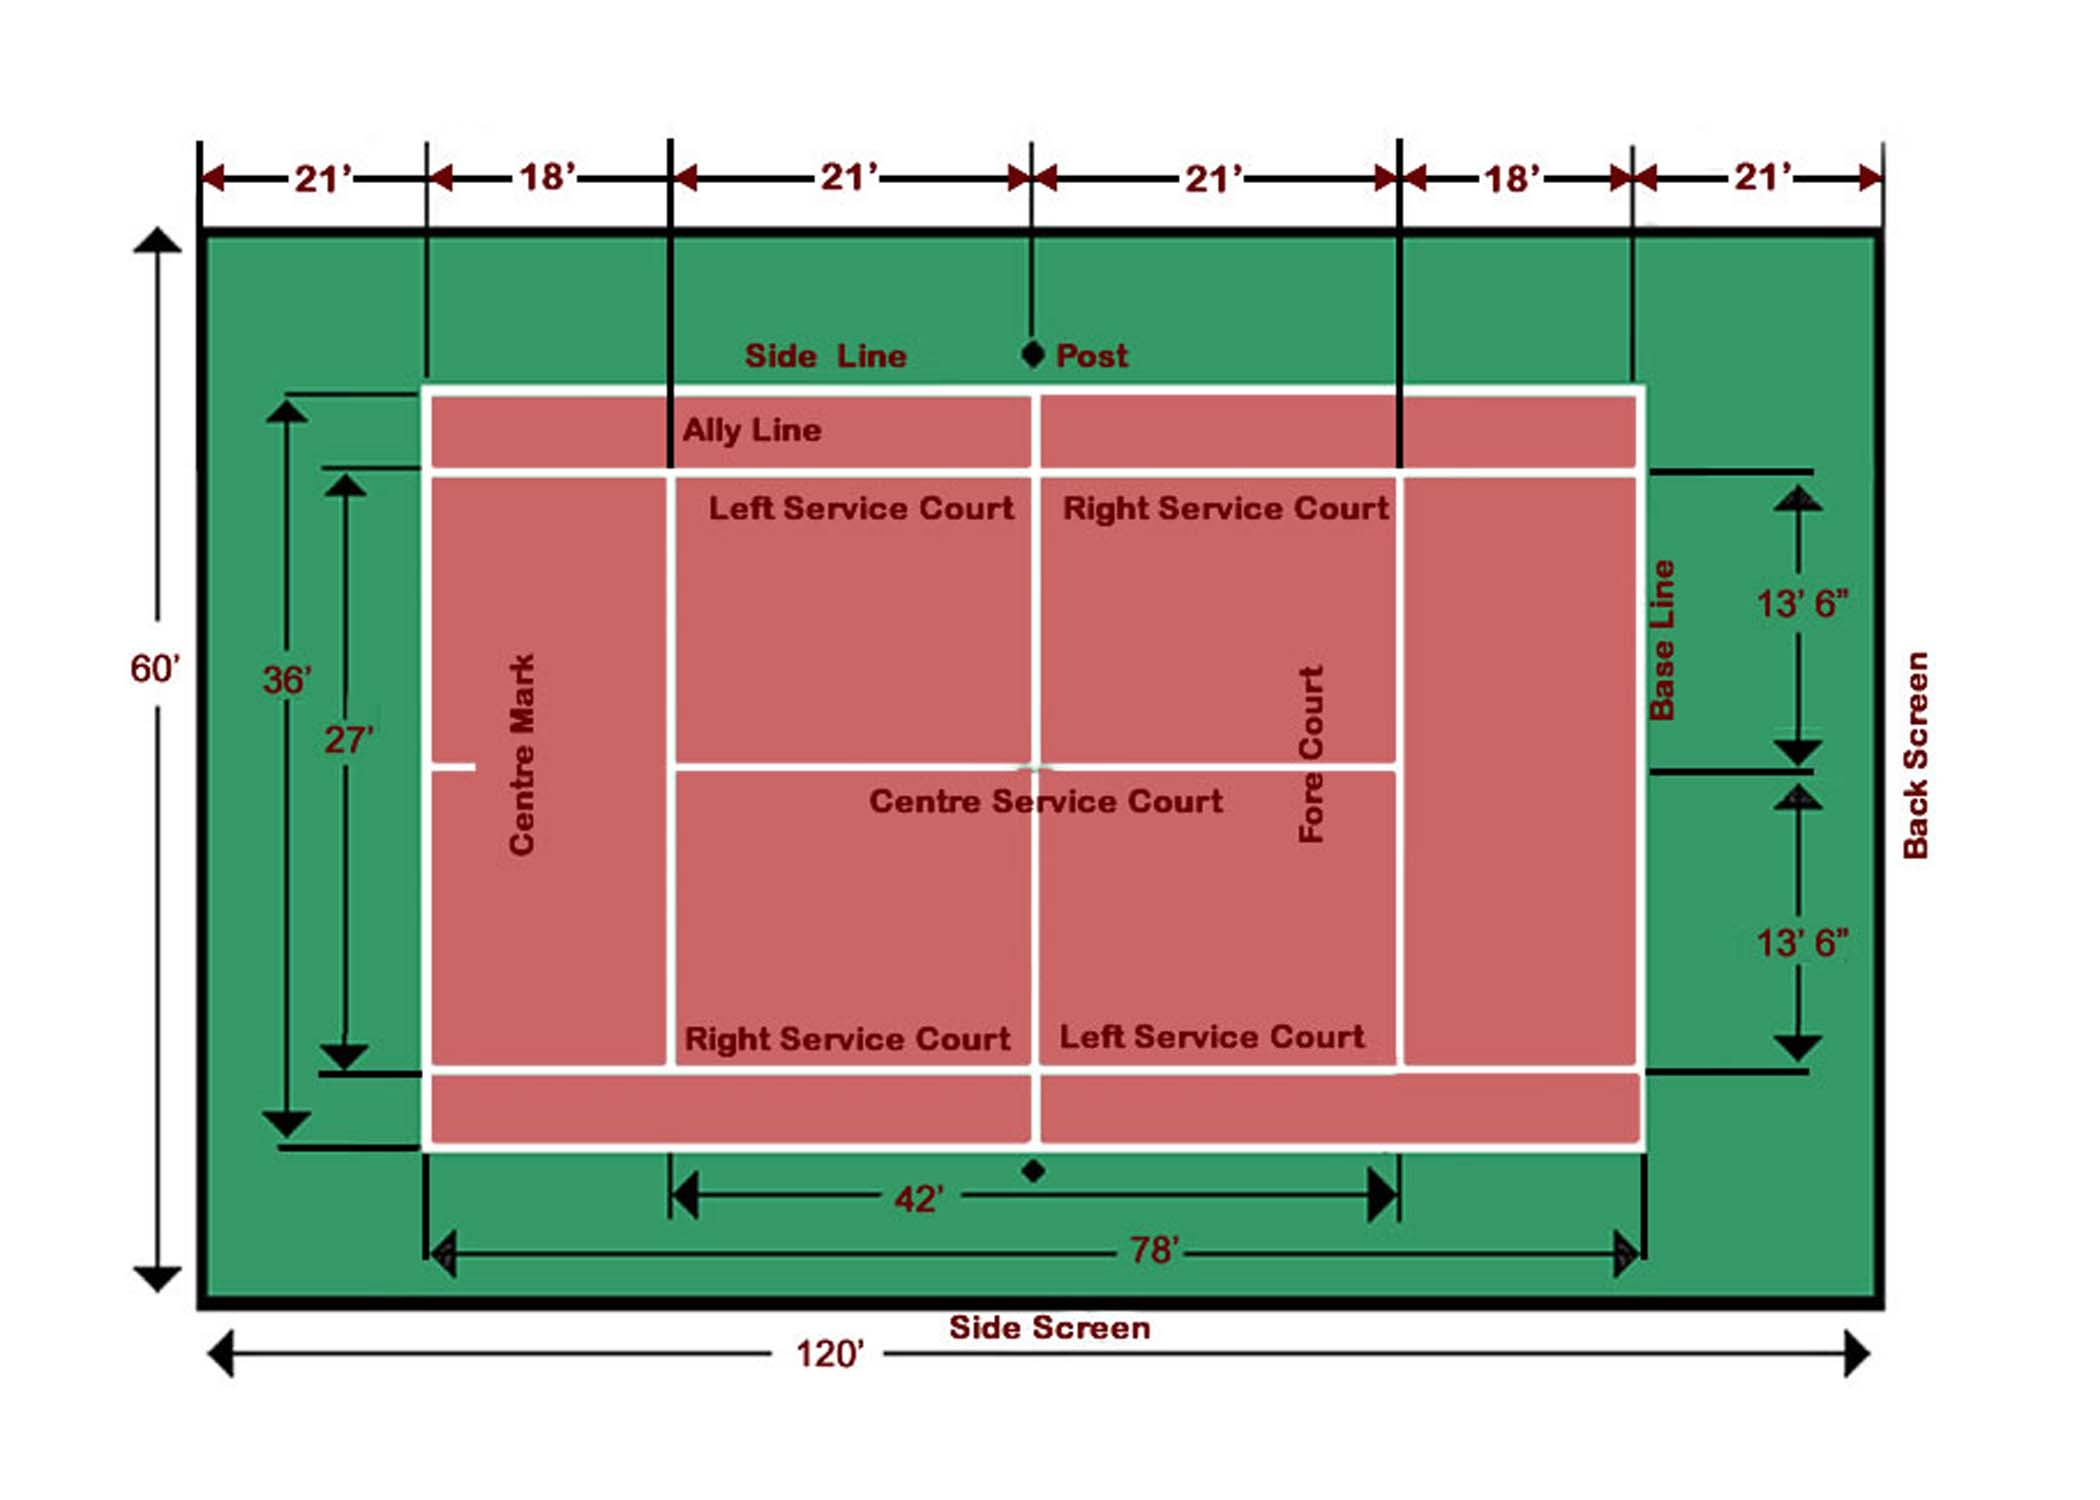 Tennis Court Dimensions showing serving lines, fault lines